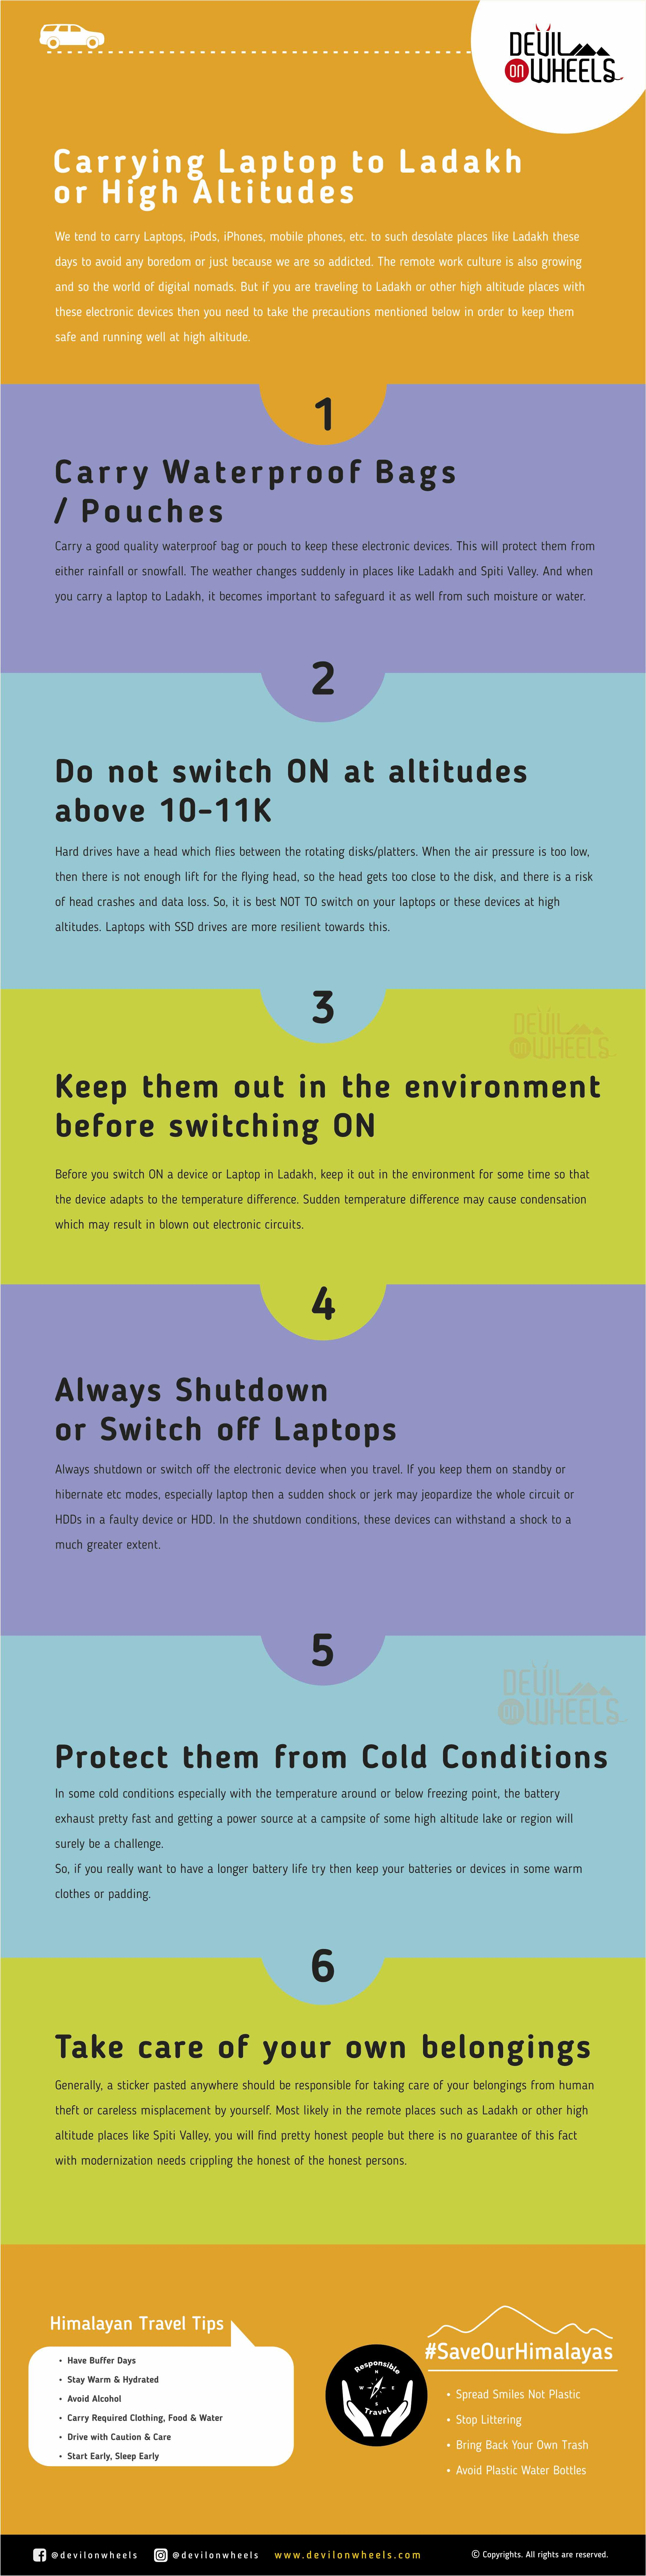 Tips to carry a laptop to Ladakh or Spiti Valley